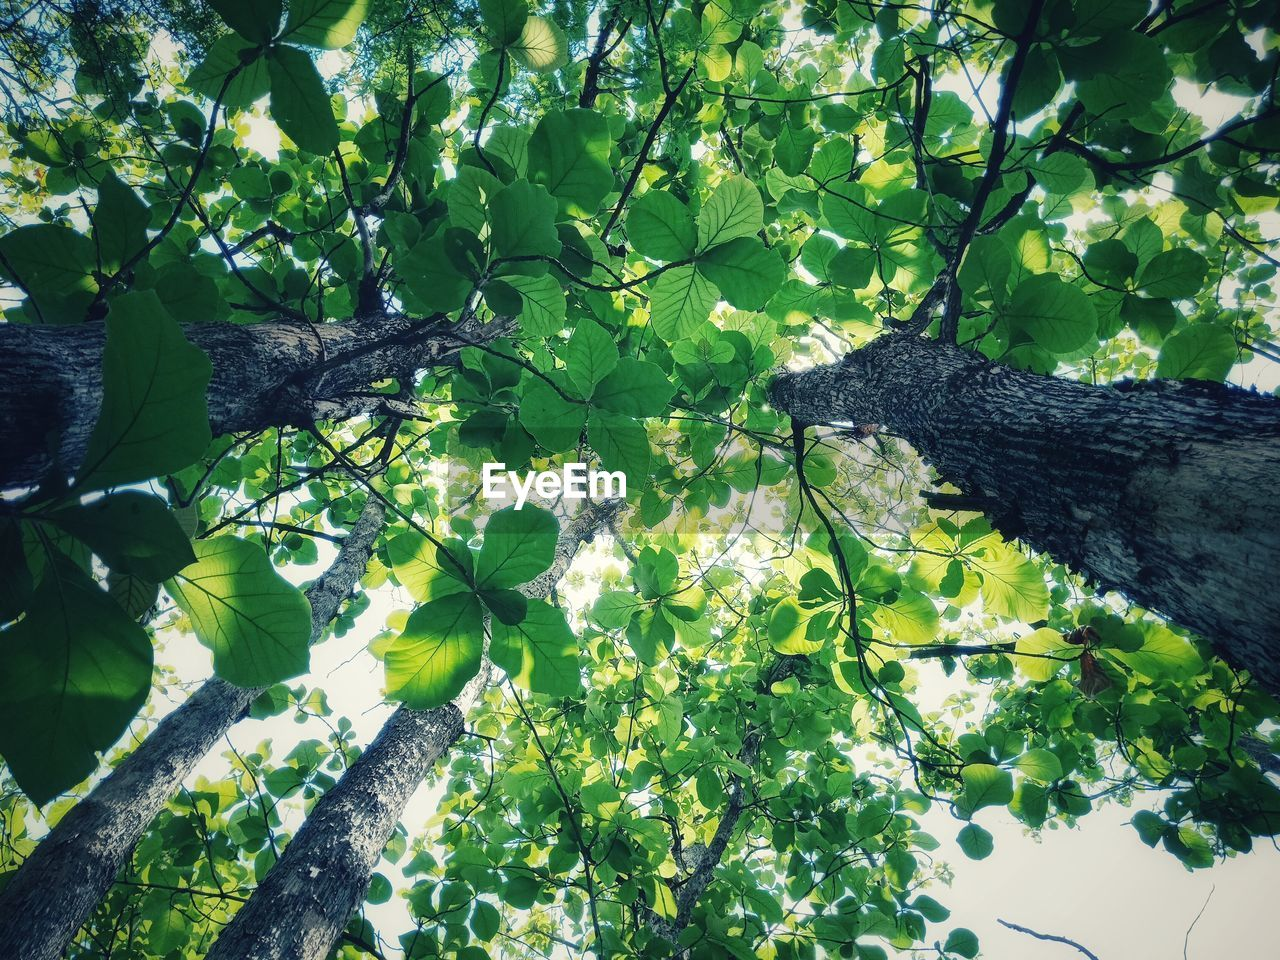 plant, growth, leaf, plant part, tree, nature, green color, no people, beauty in nature, day, branch, one animal, close-up, animal themes, sunlight, flowering plant, flower, animal, freshness, outdoors